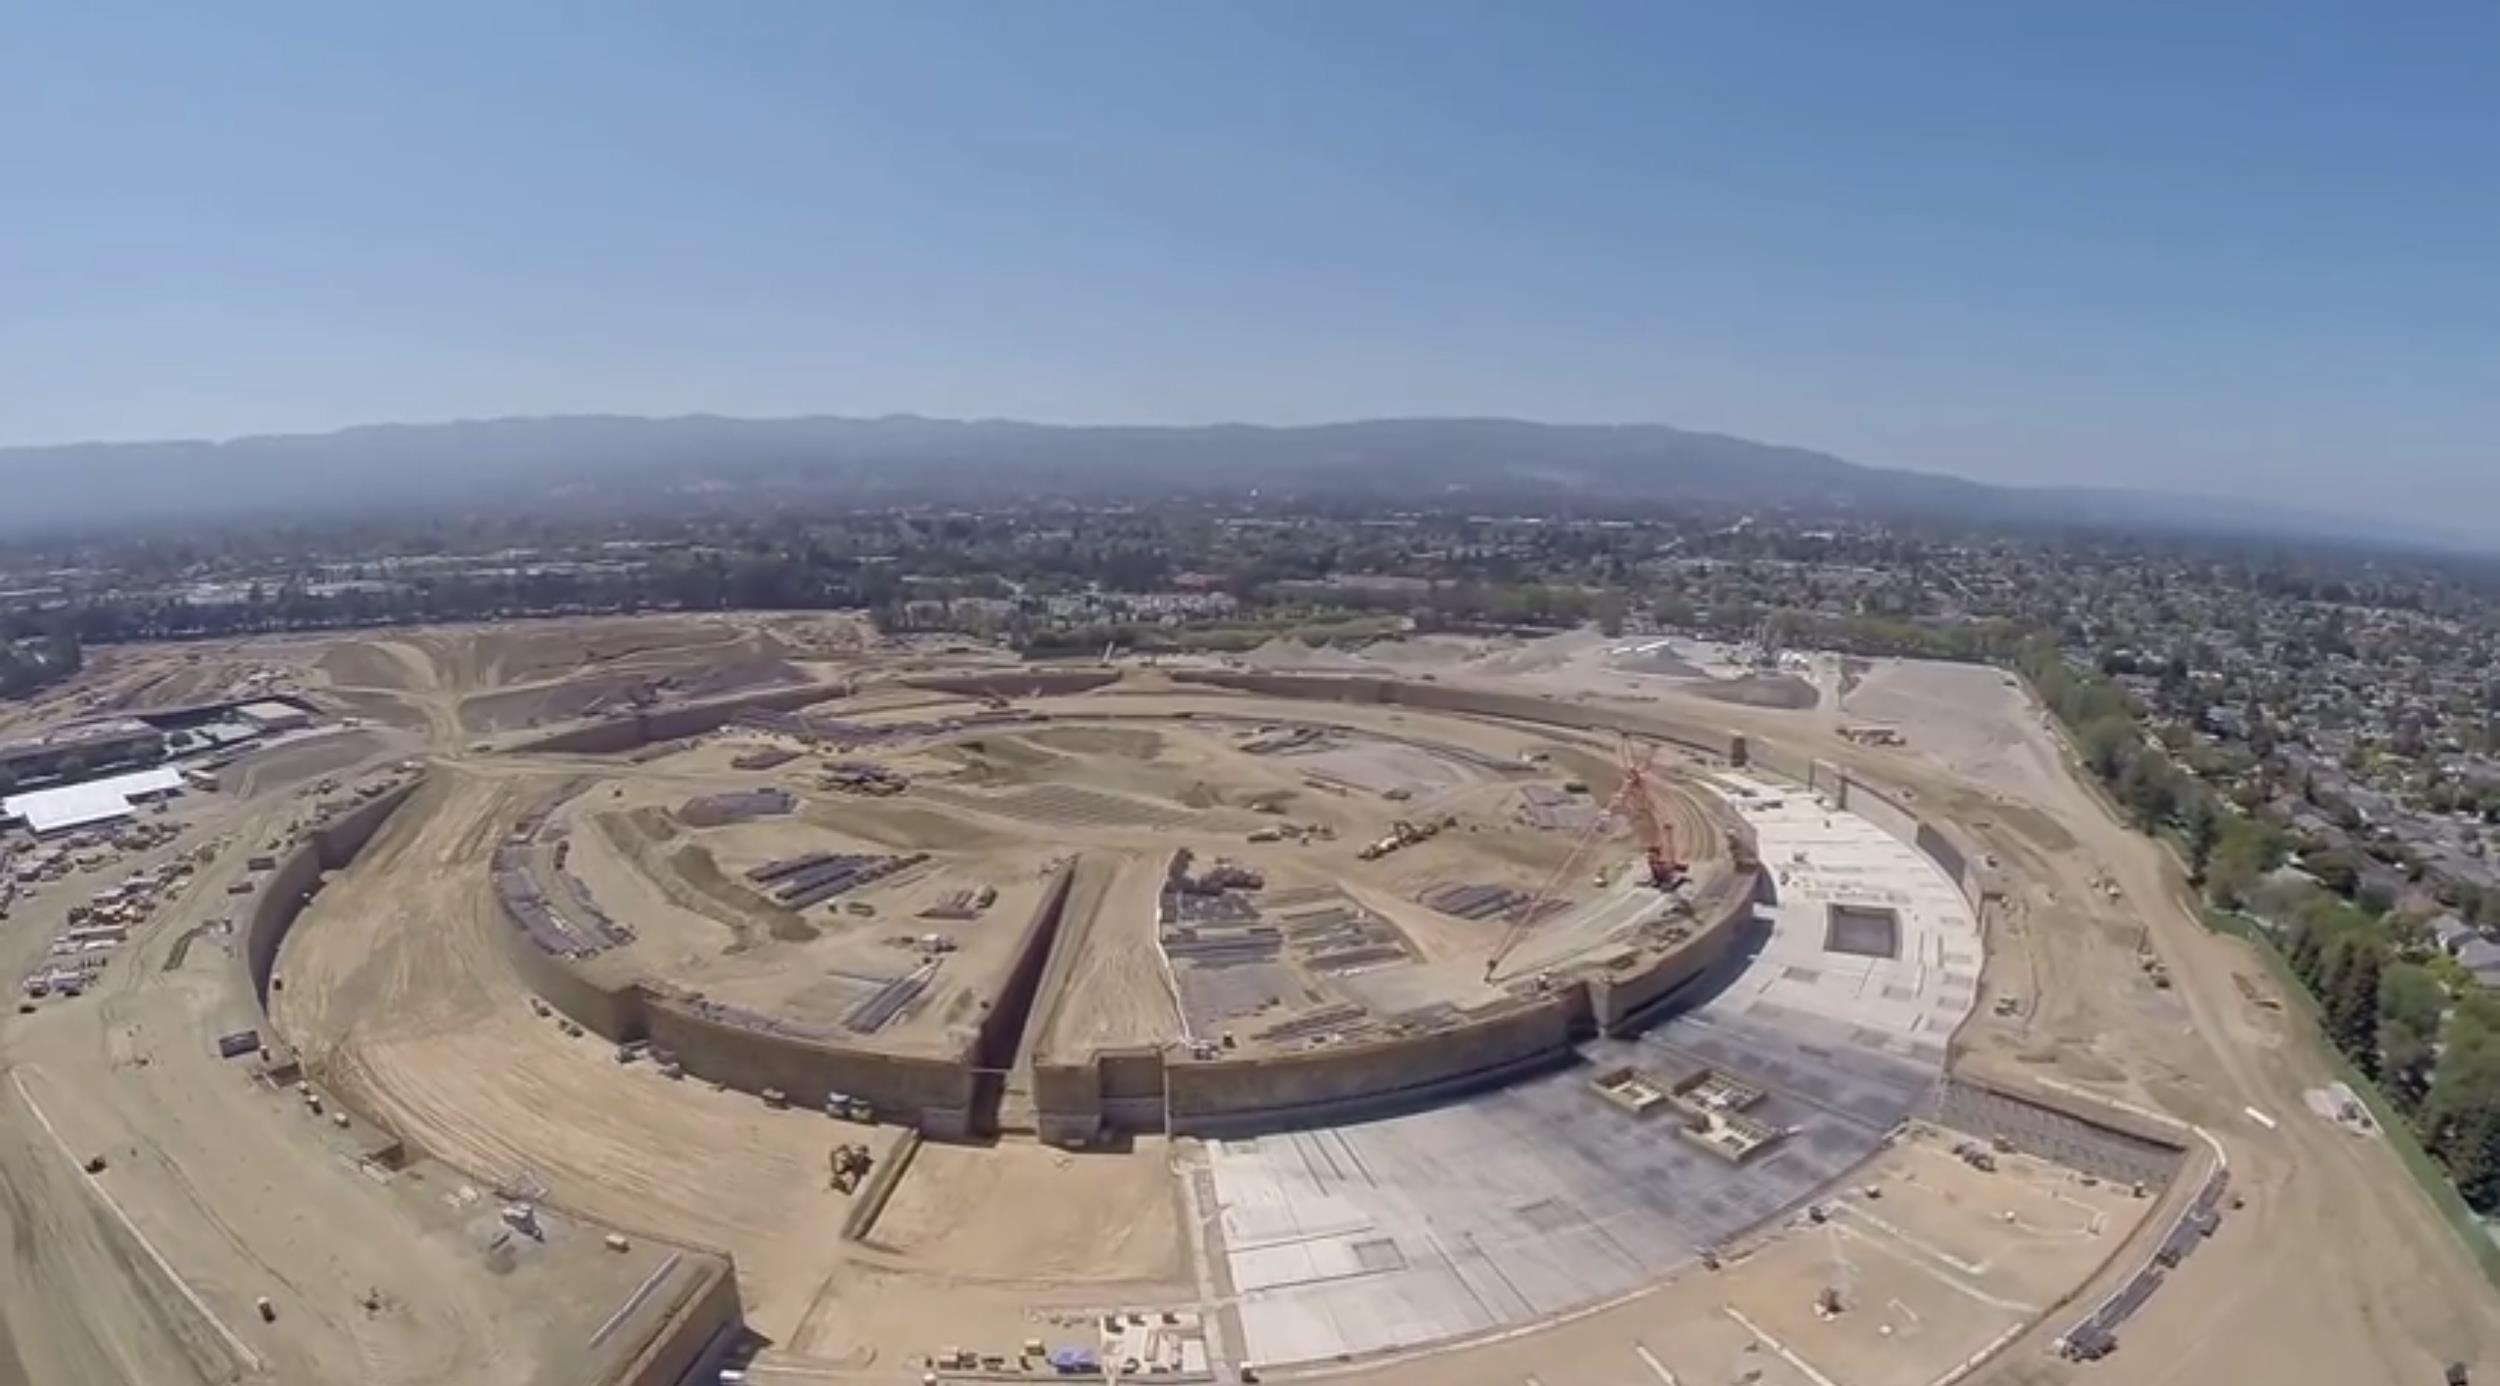 drone video shows construction progress on apple 39 s new campus 2 nbc news. Black Bedroom Furniture Sets. Home Design Ideas